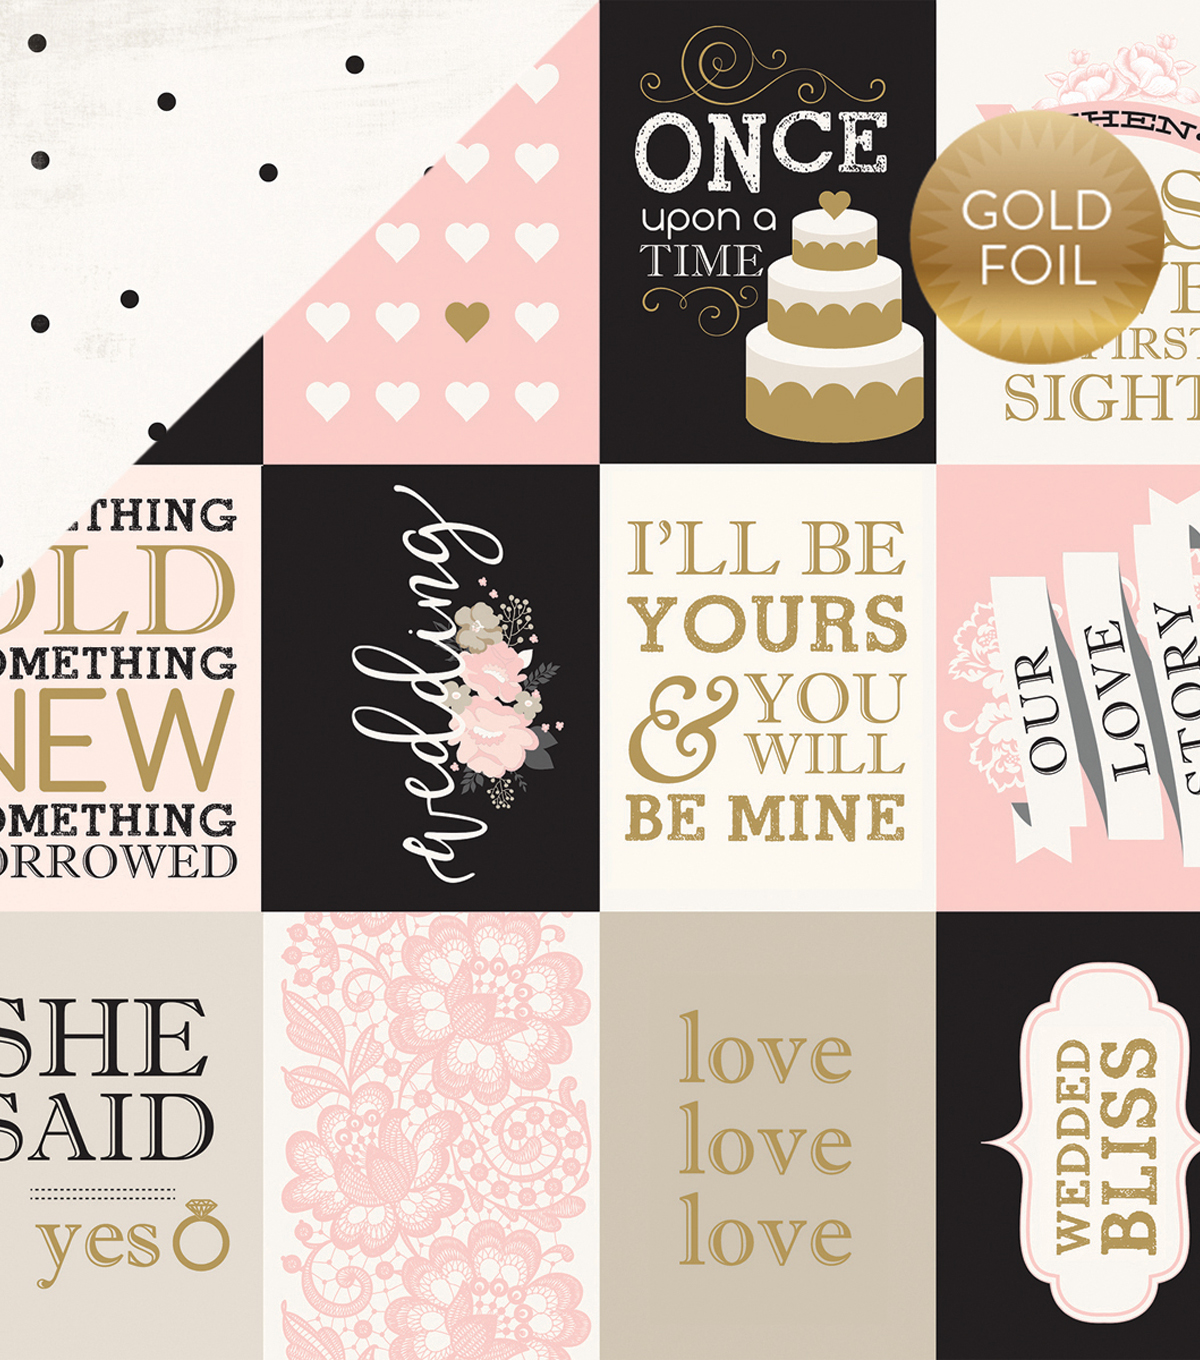 Wedding Bliss Foiled Cardstock 3\u0022X4\u0022 Journaling Cards